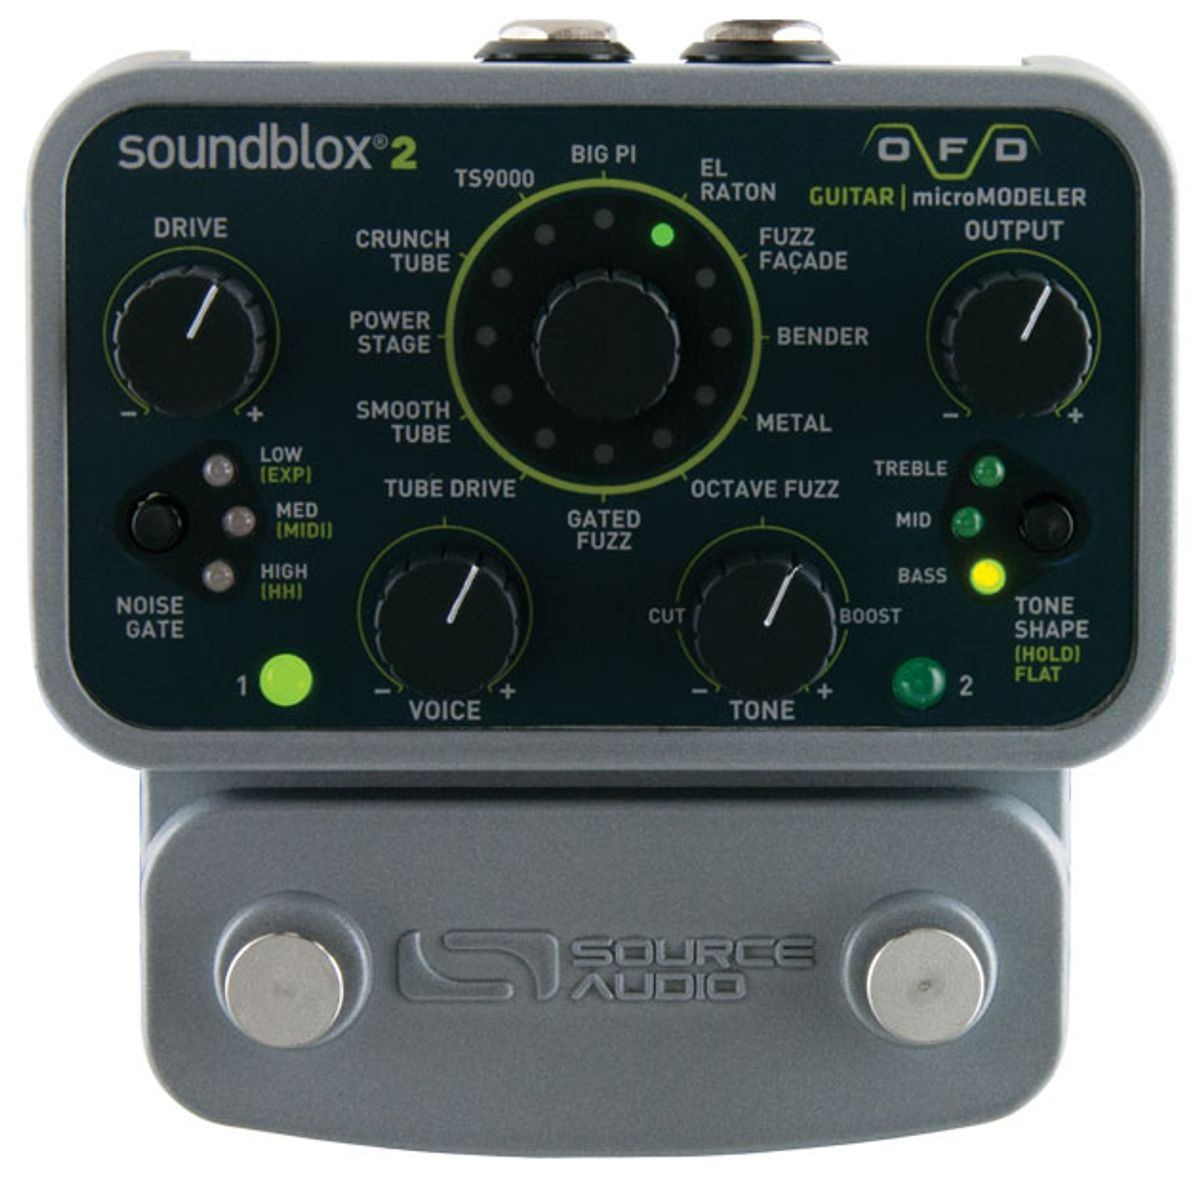 Source Audio OFD Guitar microModeler Review